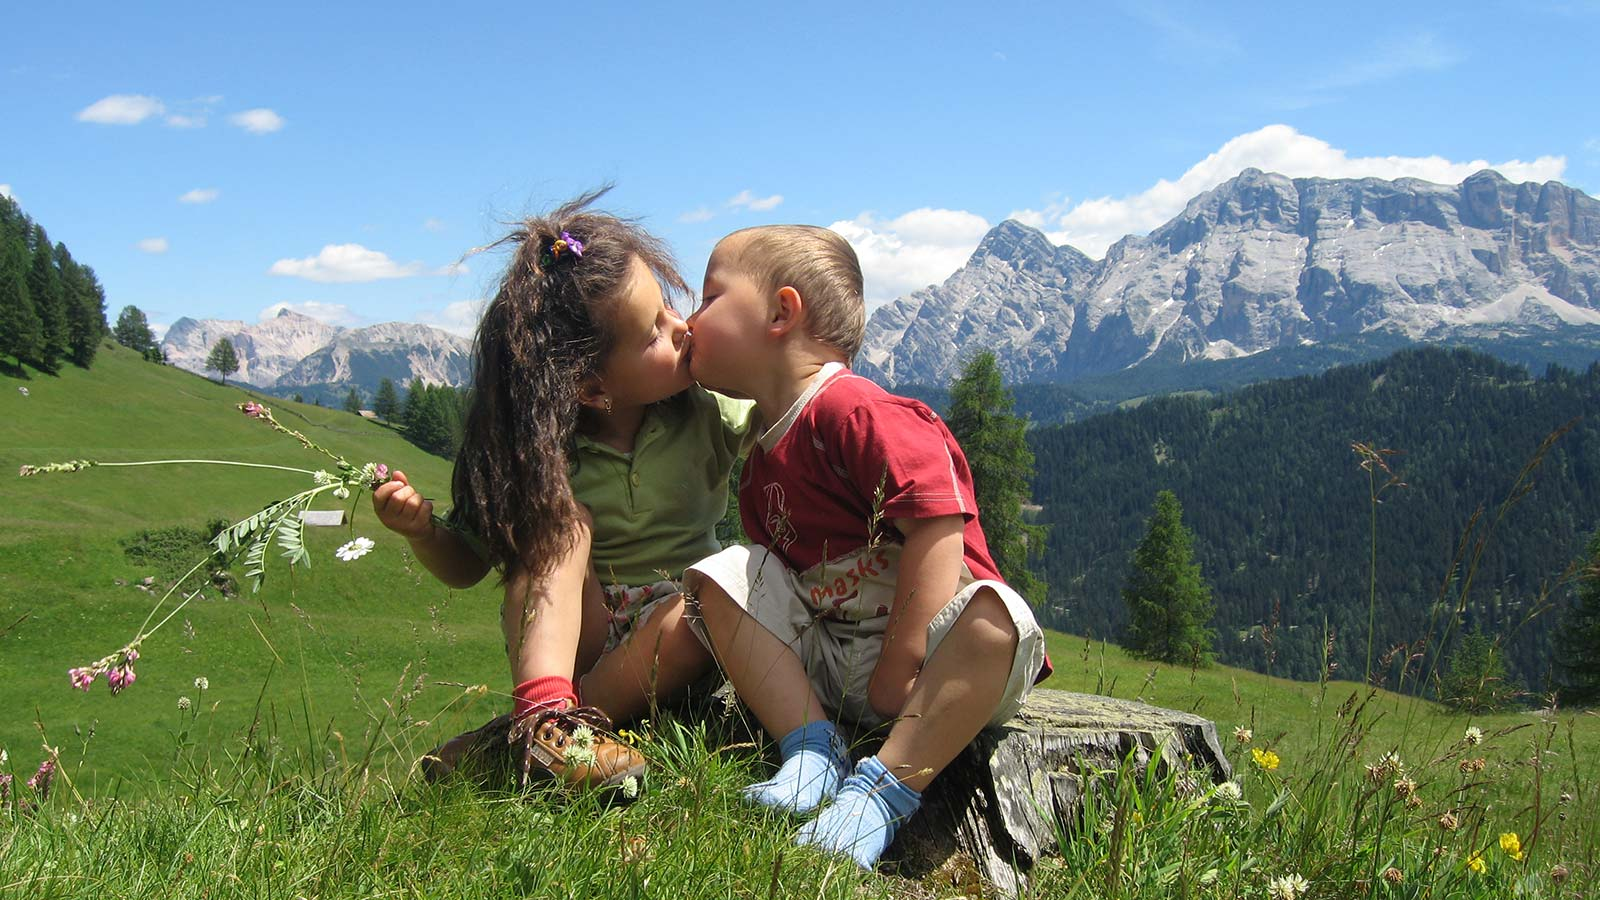 Kids kissing on a mountain meadow with the Dolomites on the background